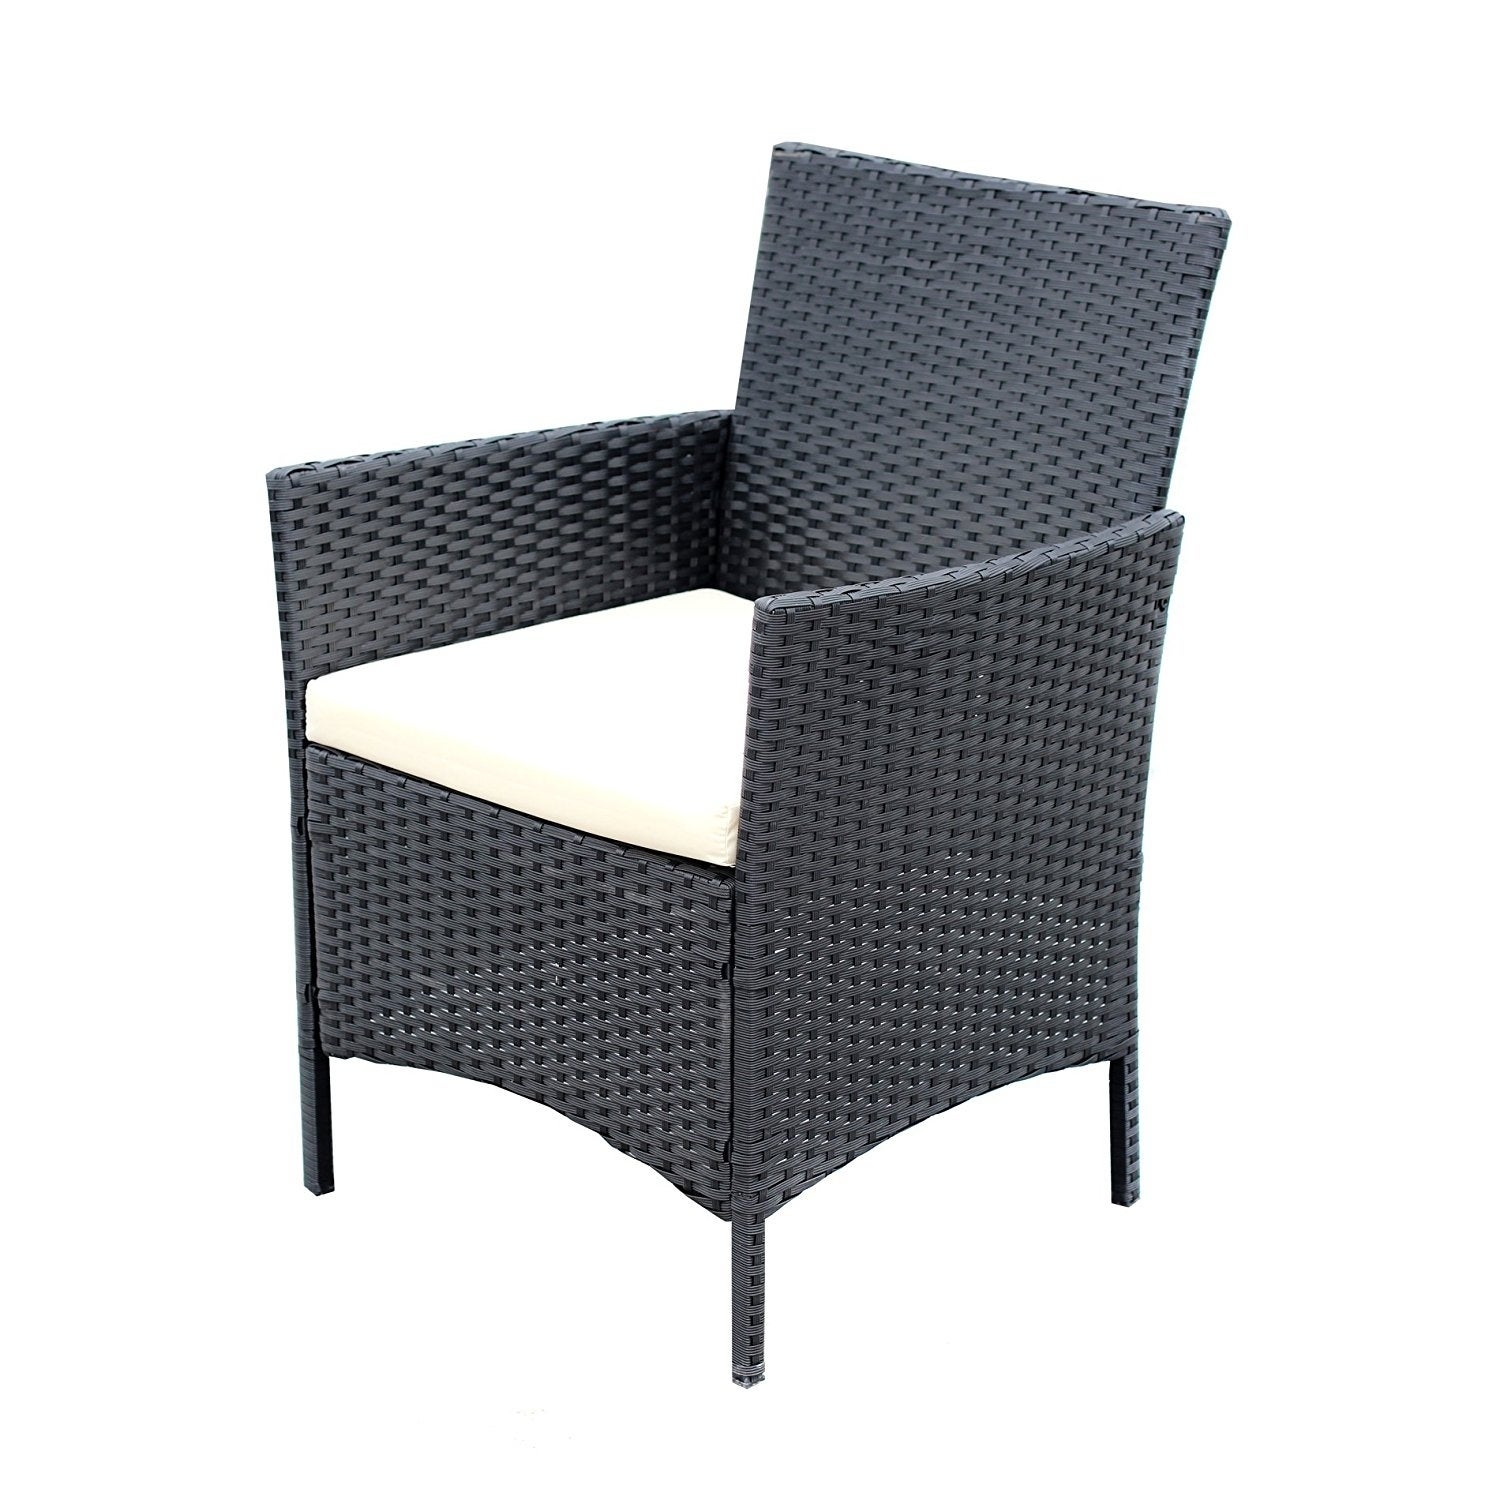 Ids Home 4 Pieces Patio Furniture Set Rattan Wicker Dining Free Shipping Today 20002227